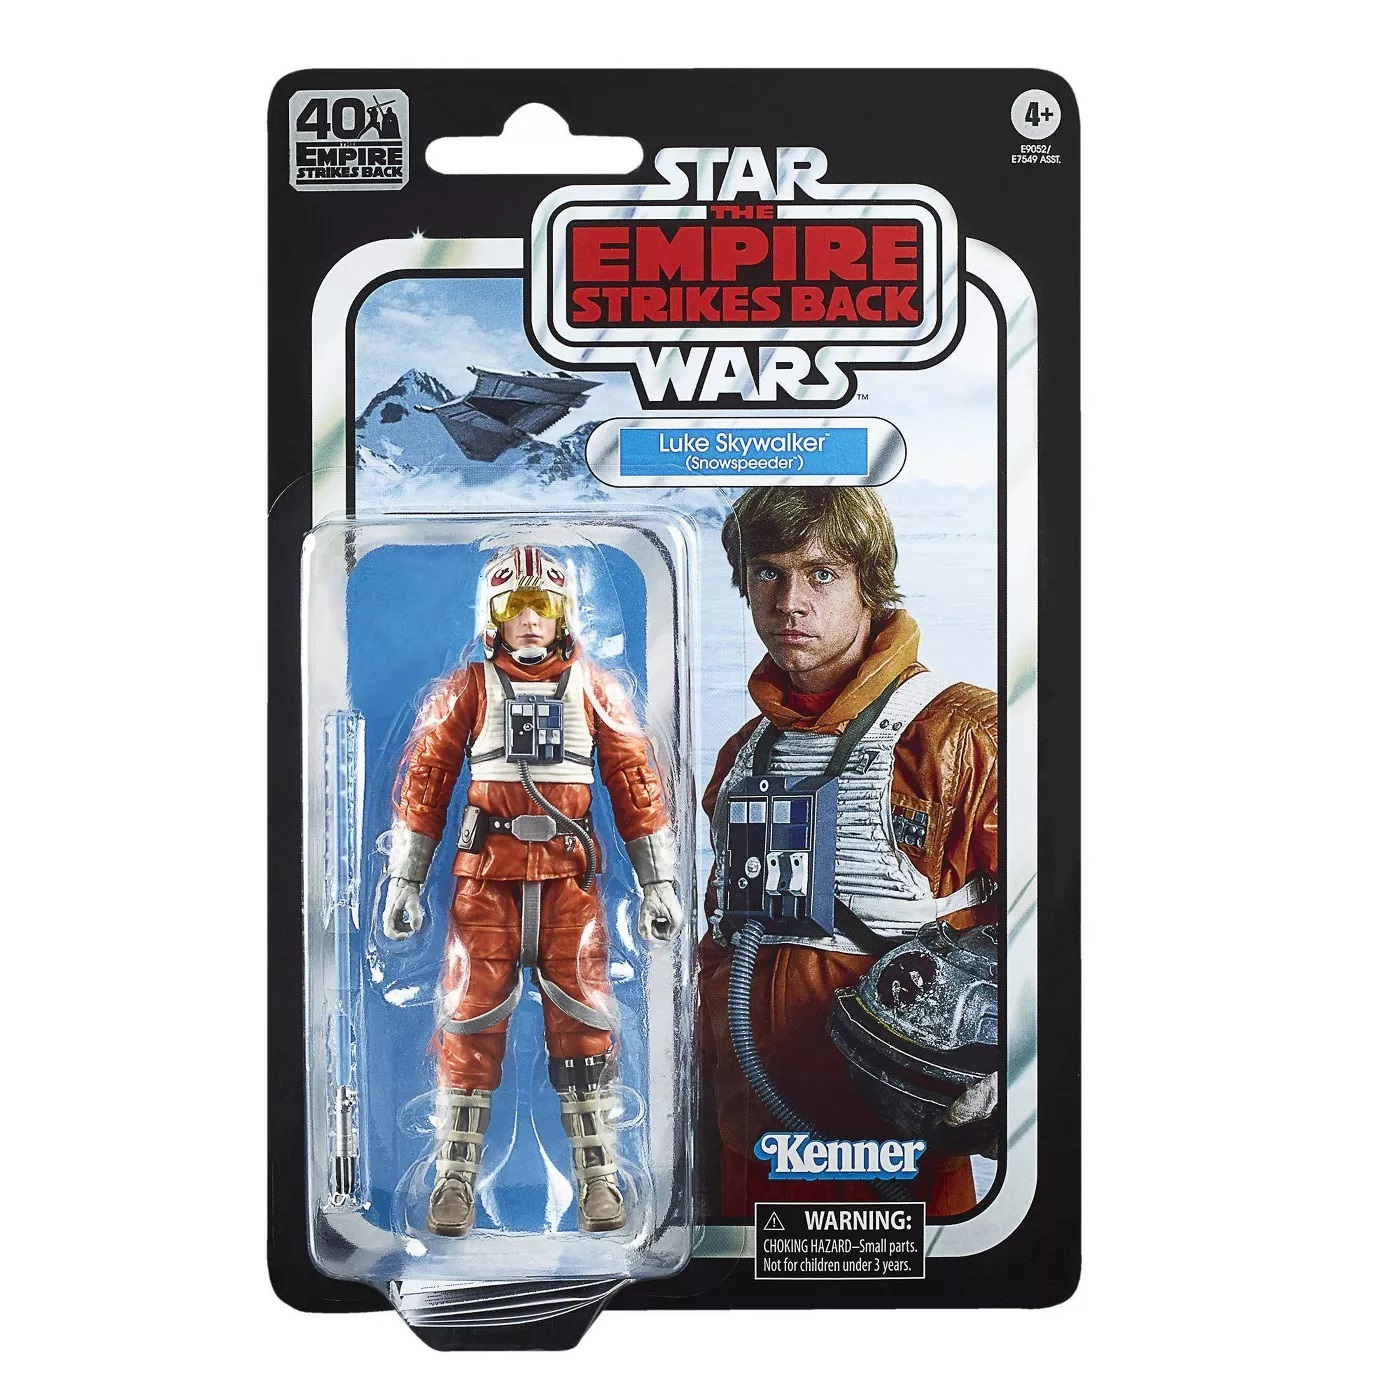 STAR WARS BLACK SERIES EMPIRE STRIKES BACK 40TH ANN WAVE 2 ACTION FIGURES